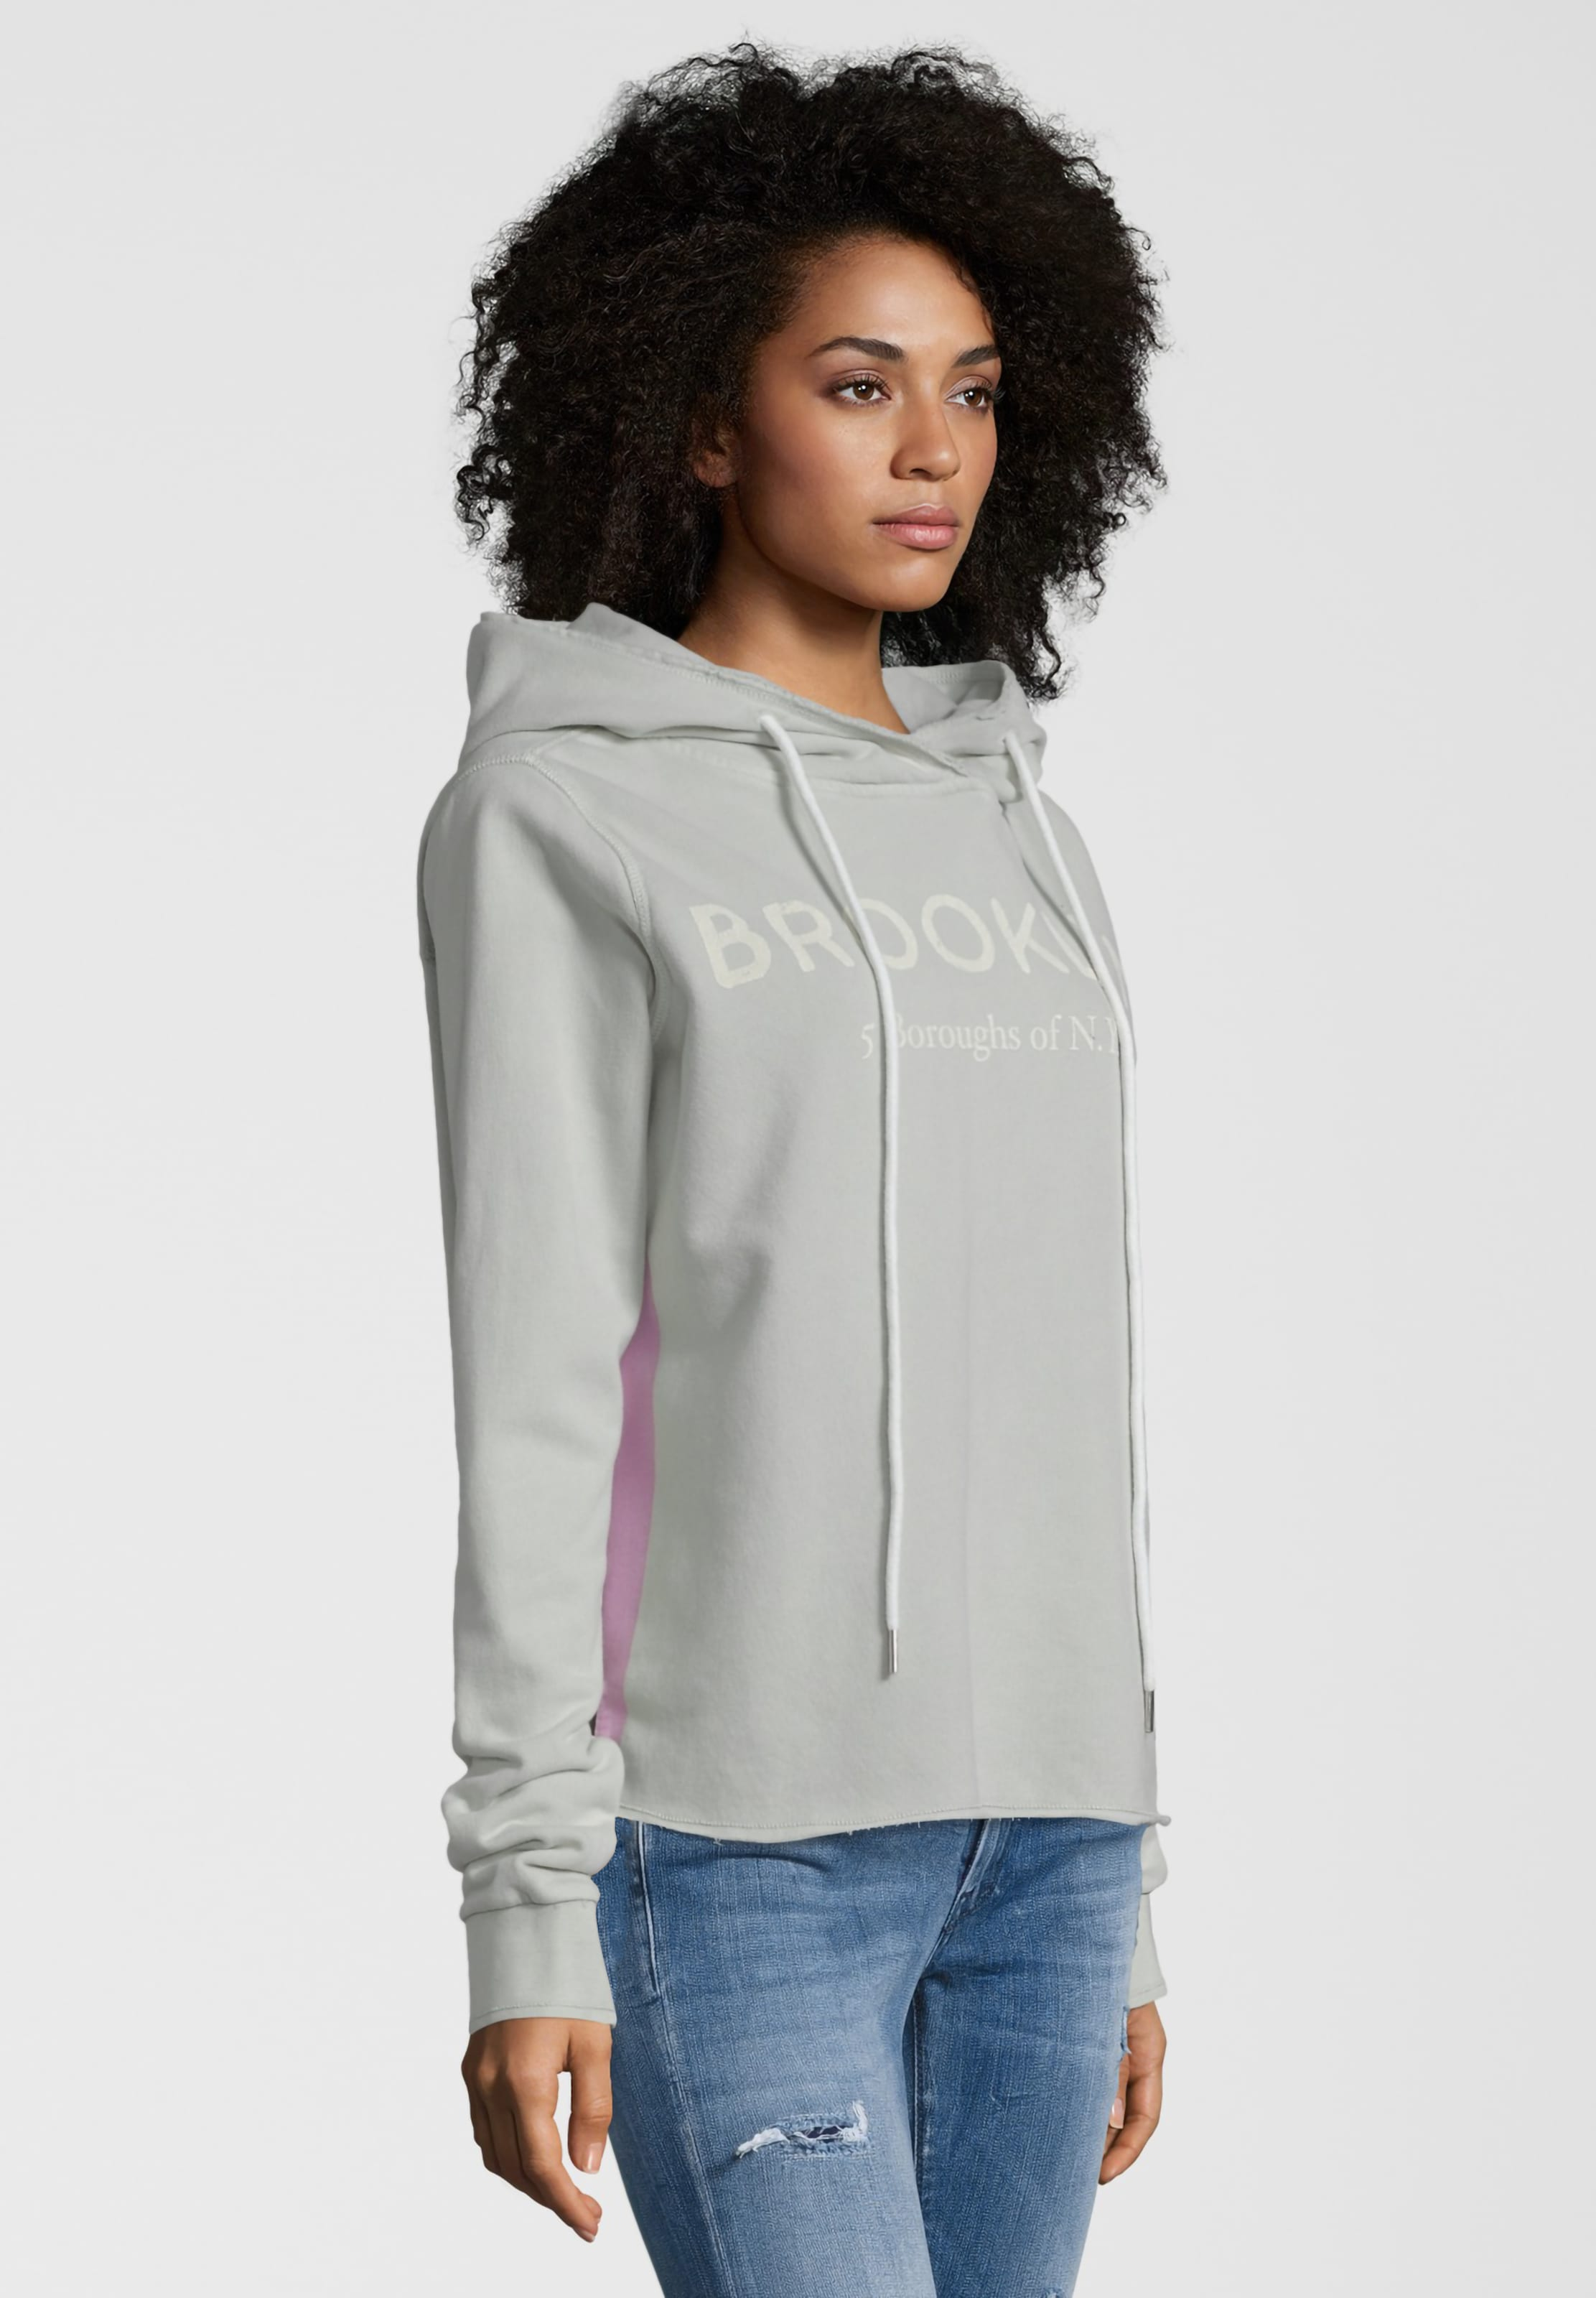 Kapuzenpullover Brooklyn' GrauHellpink In 'vintage Better Rich uPOkTZiX